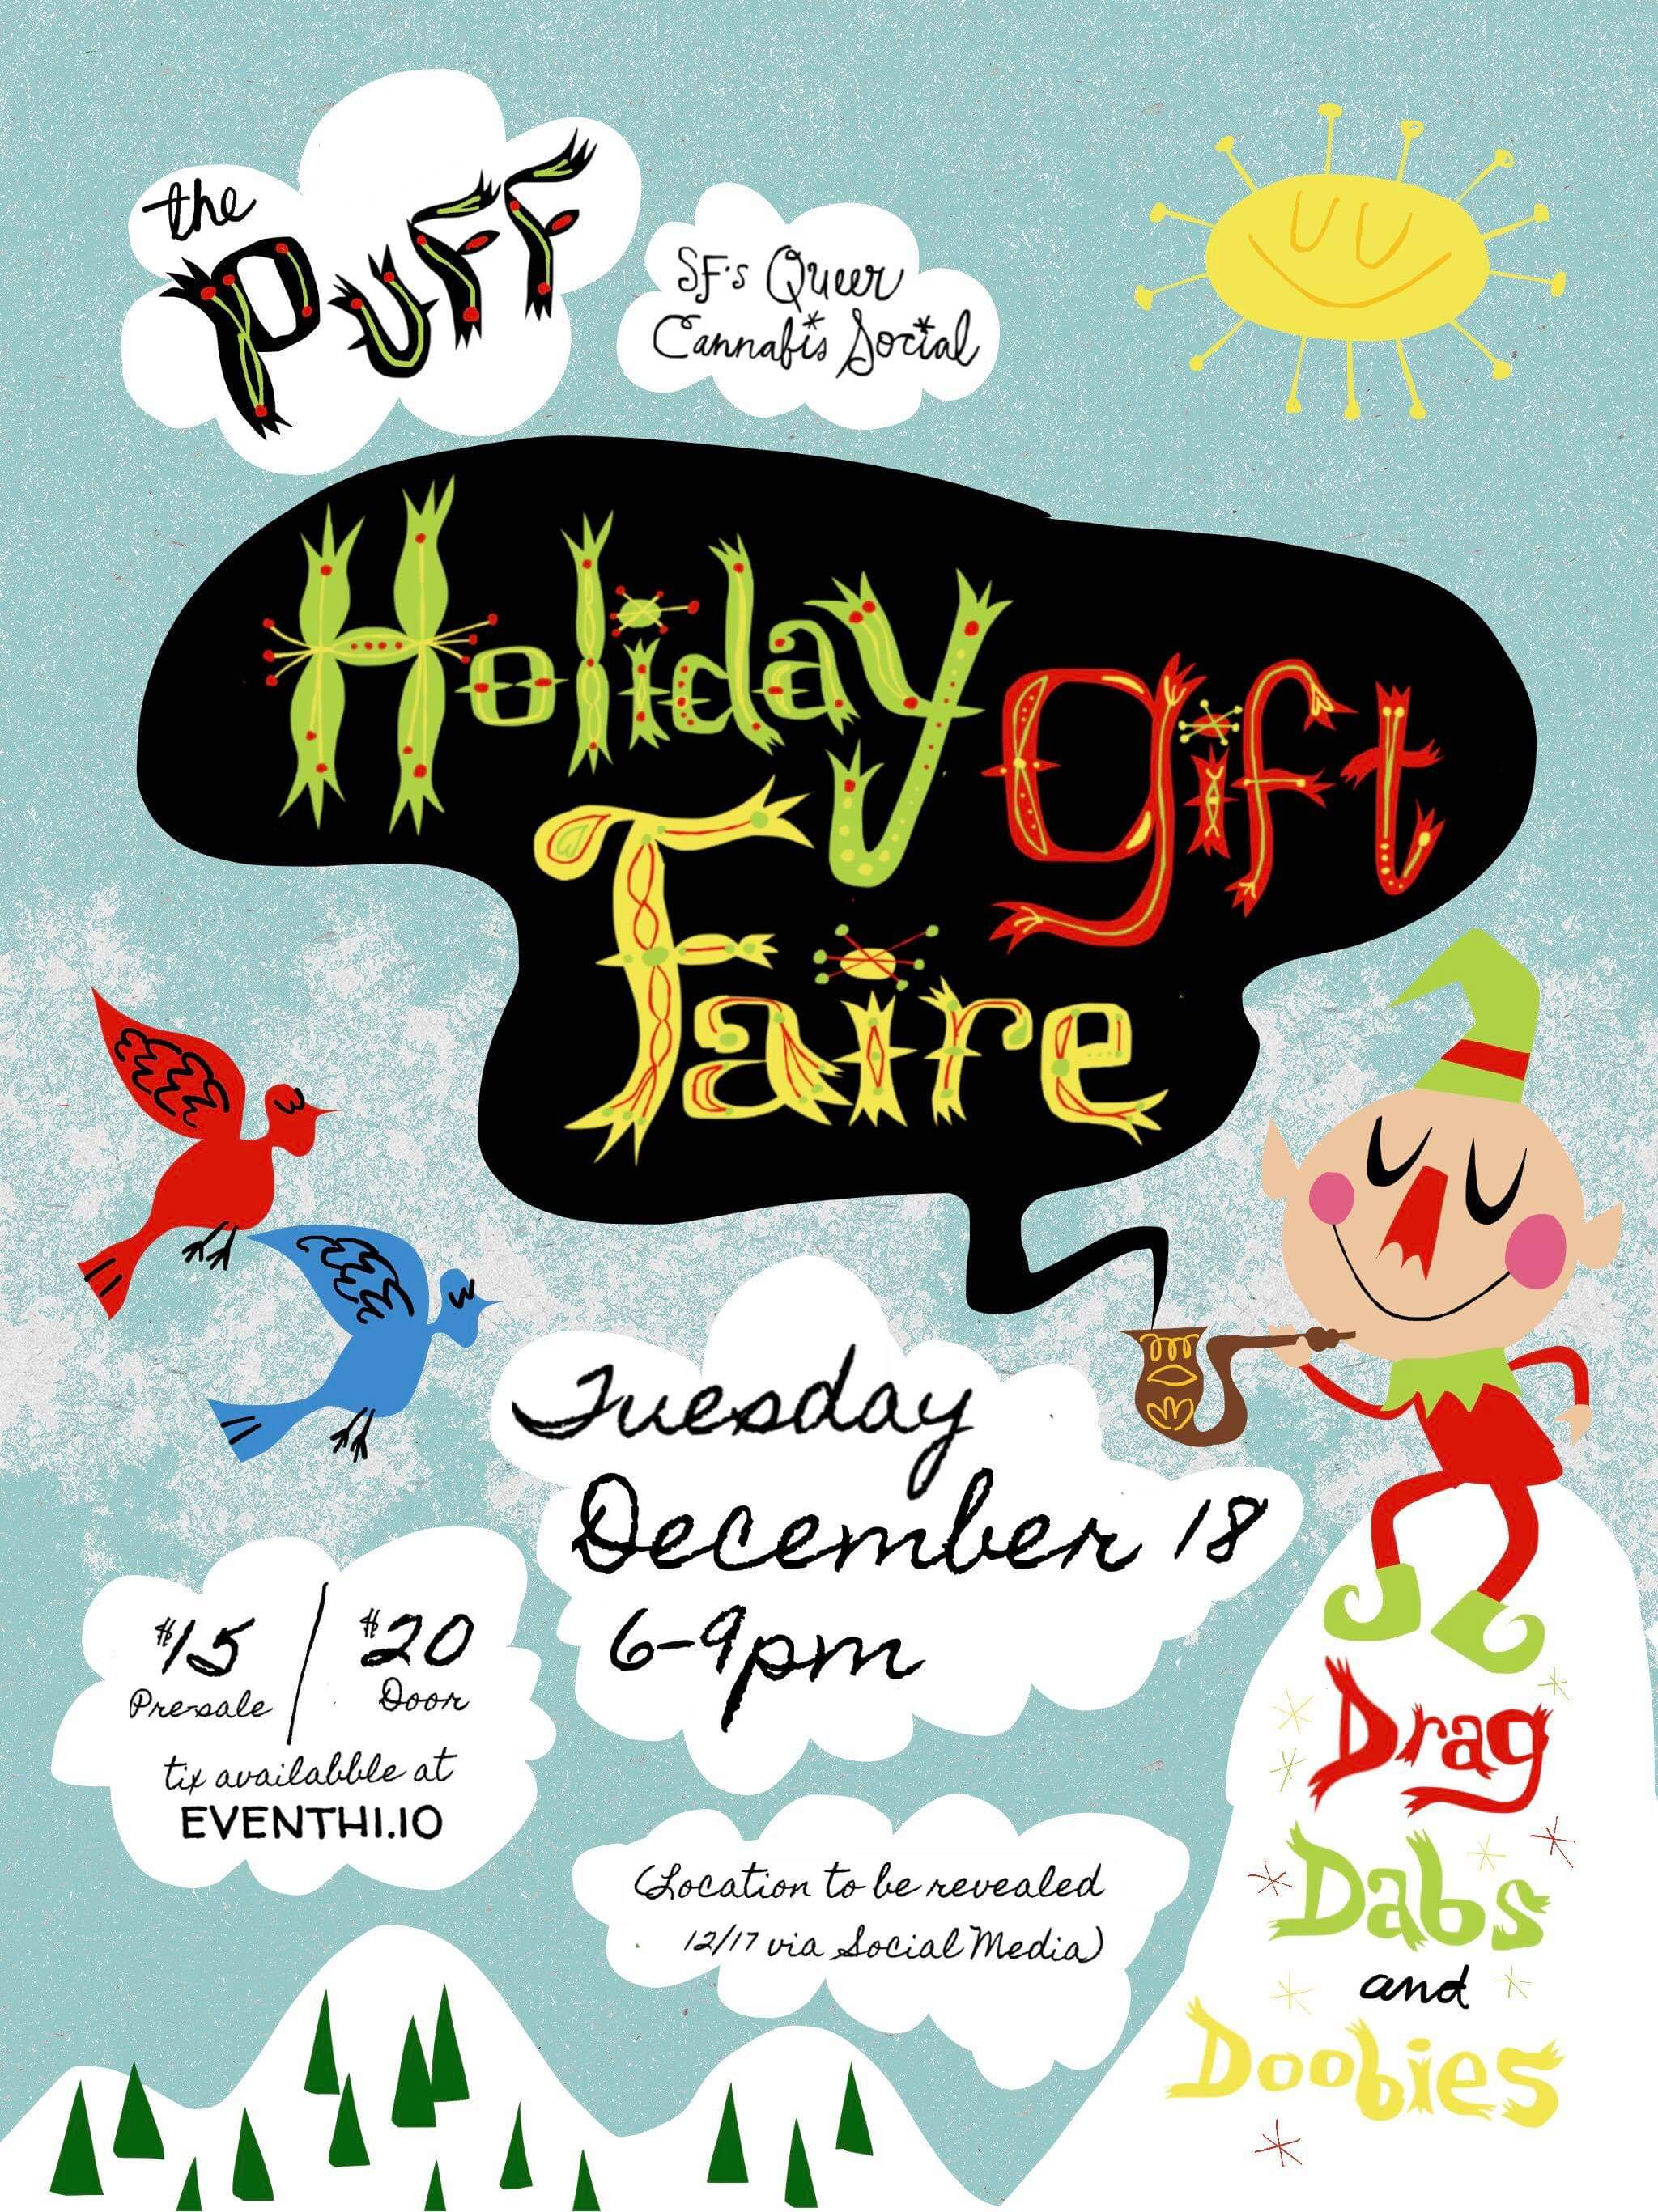 PUFF Holiday Drag Party and Craft Faire